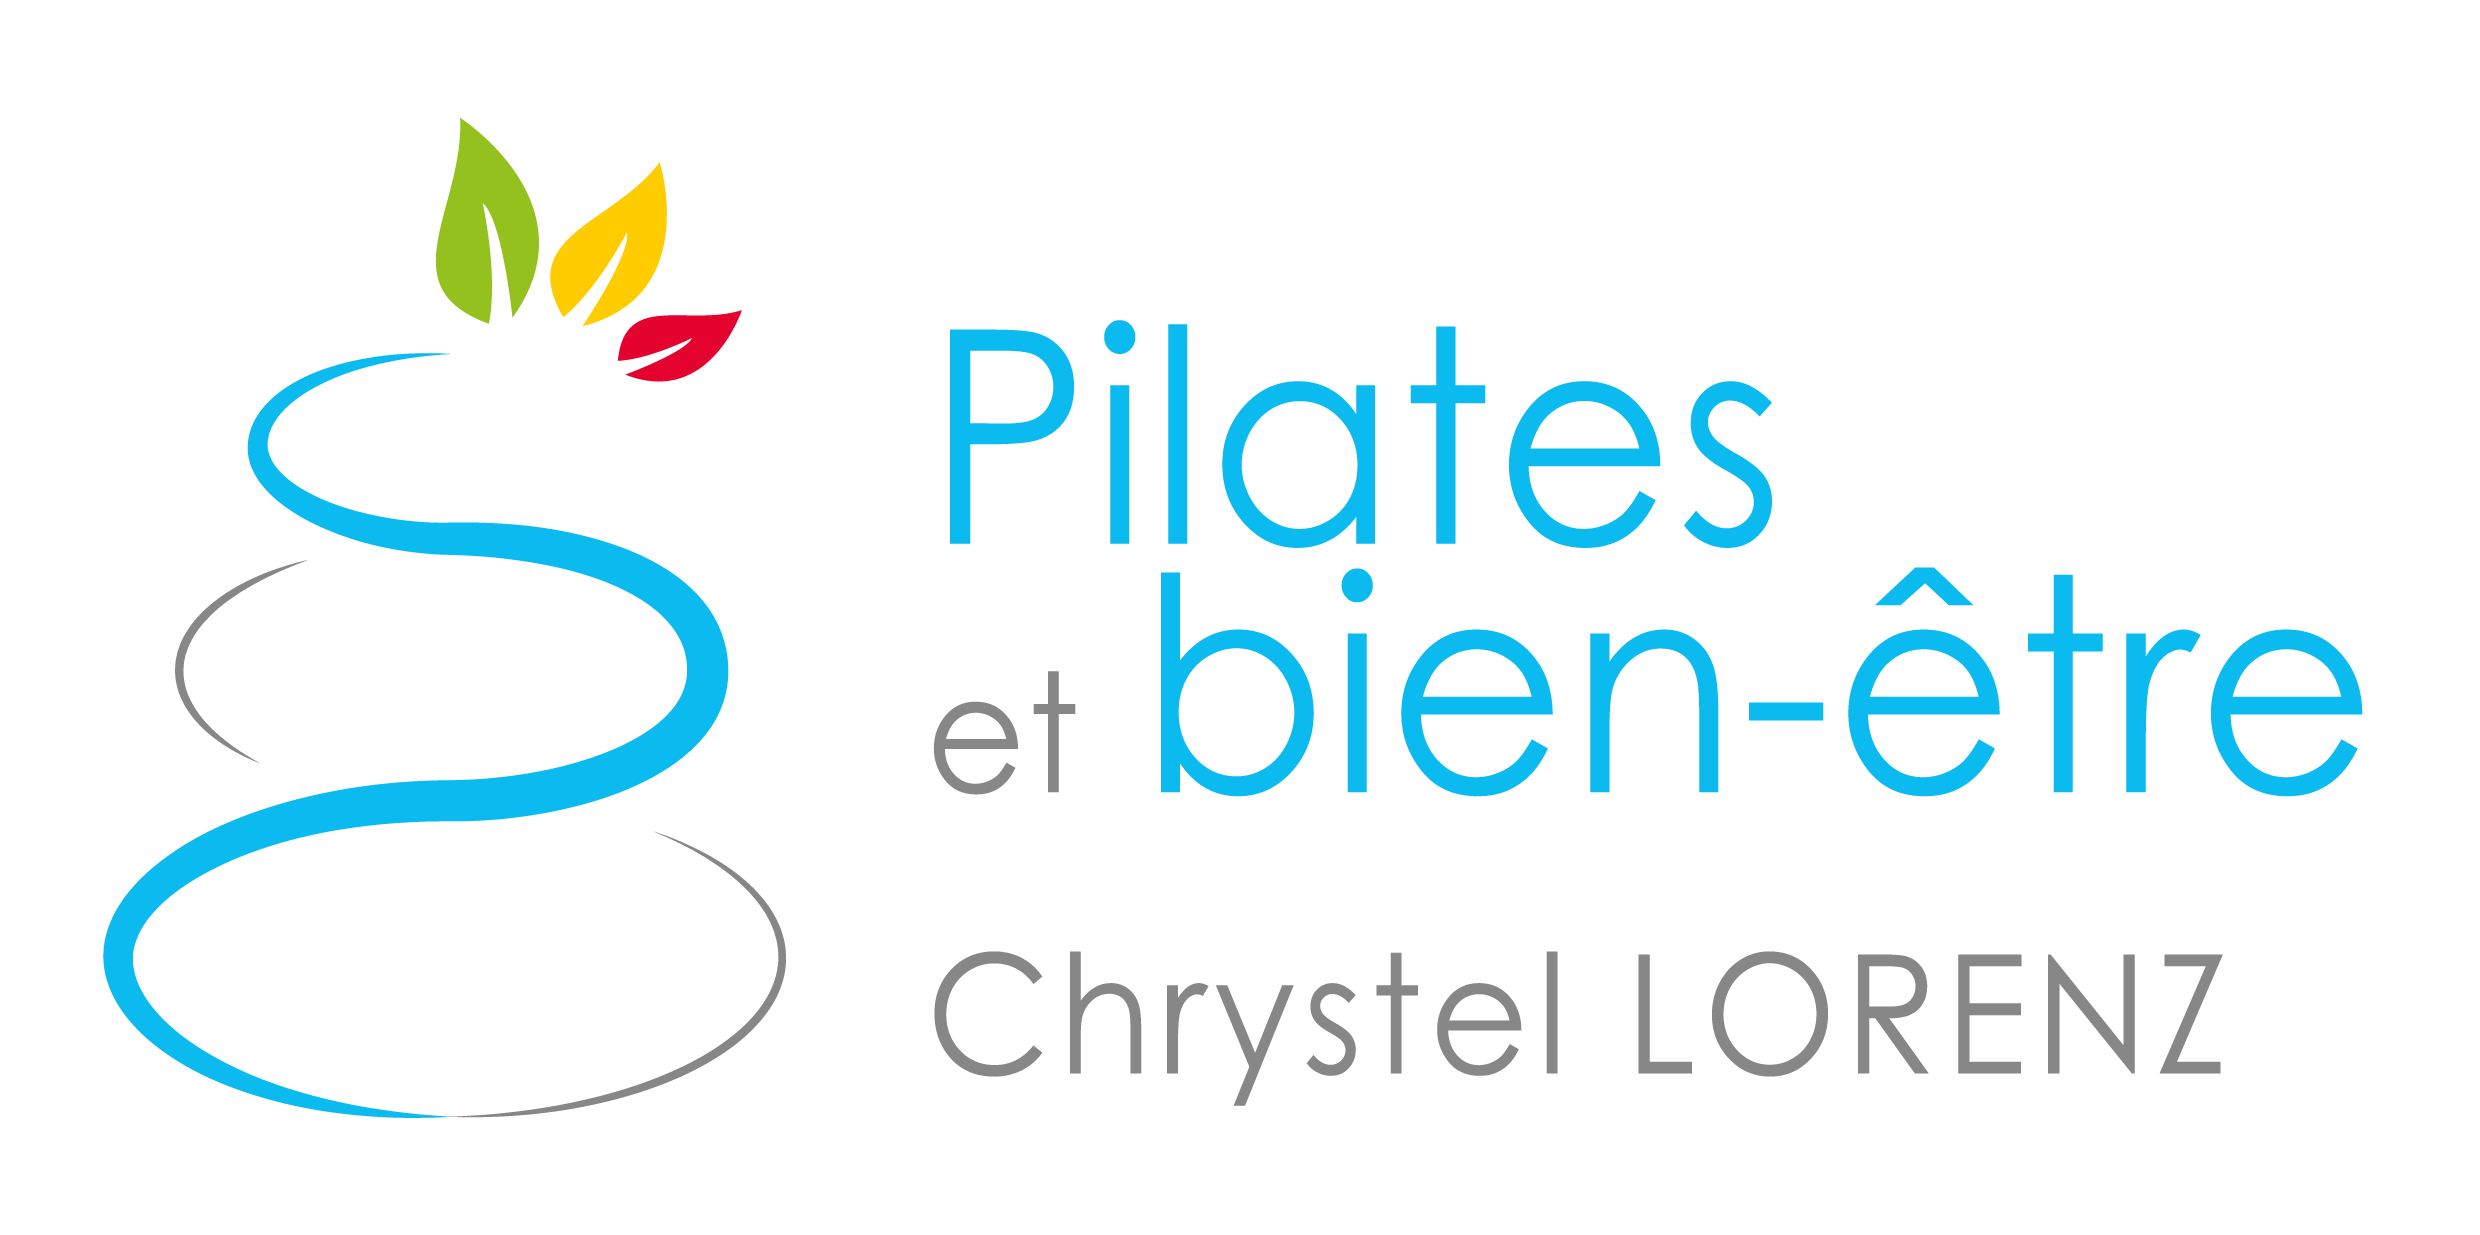 Logo Pilates Nancy, Chrystel LORENZ